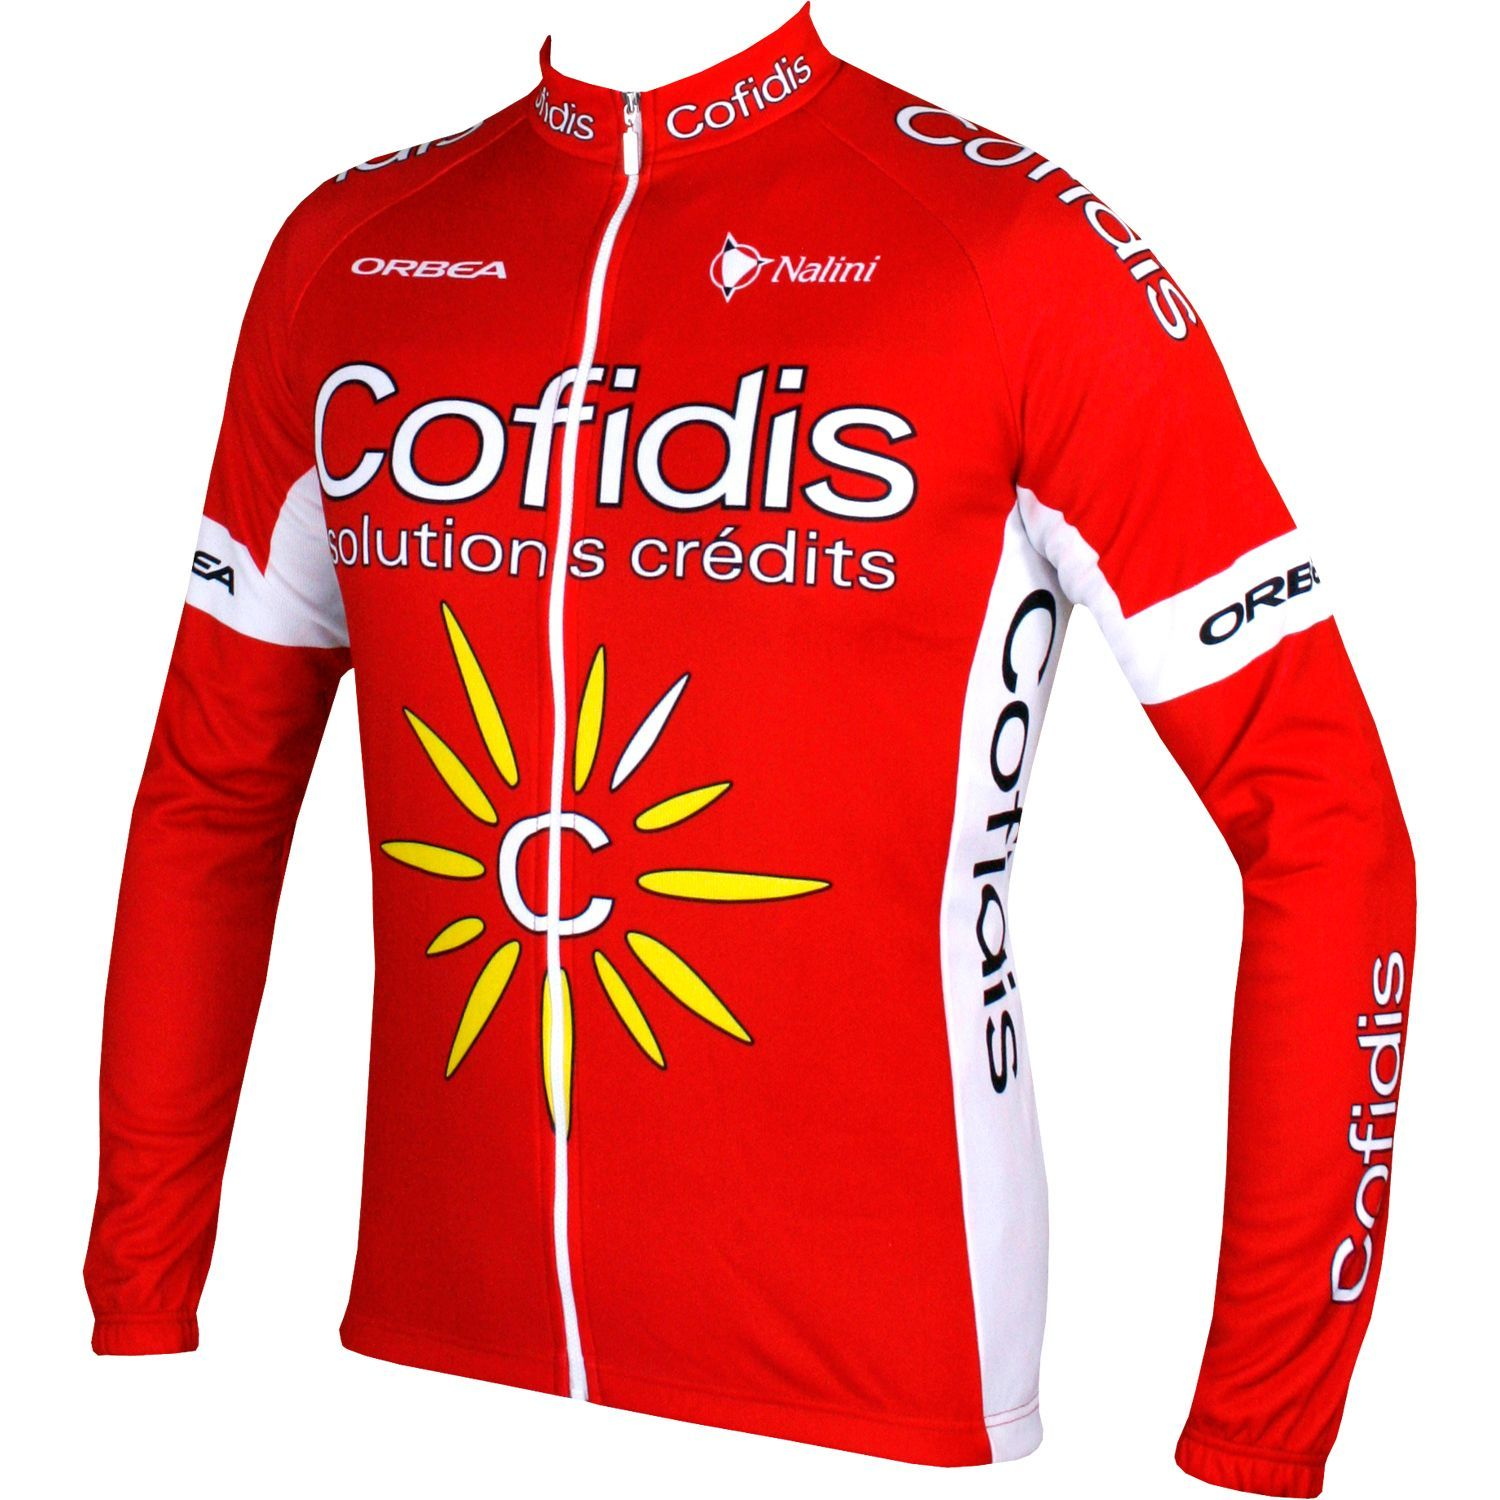 NALINI COFIDIS 2017 long sleeve cycling jersey - professional cycling team 3fd966b52